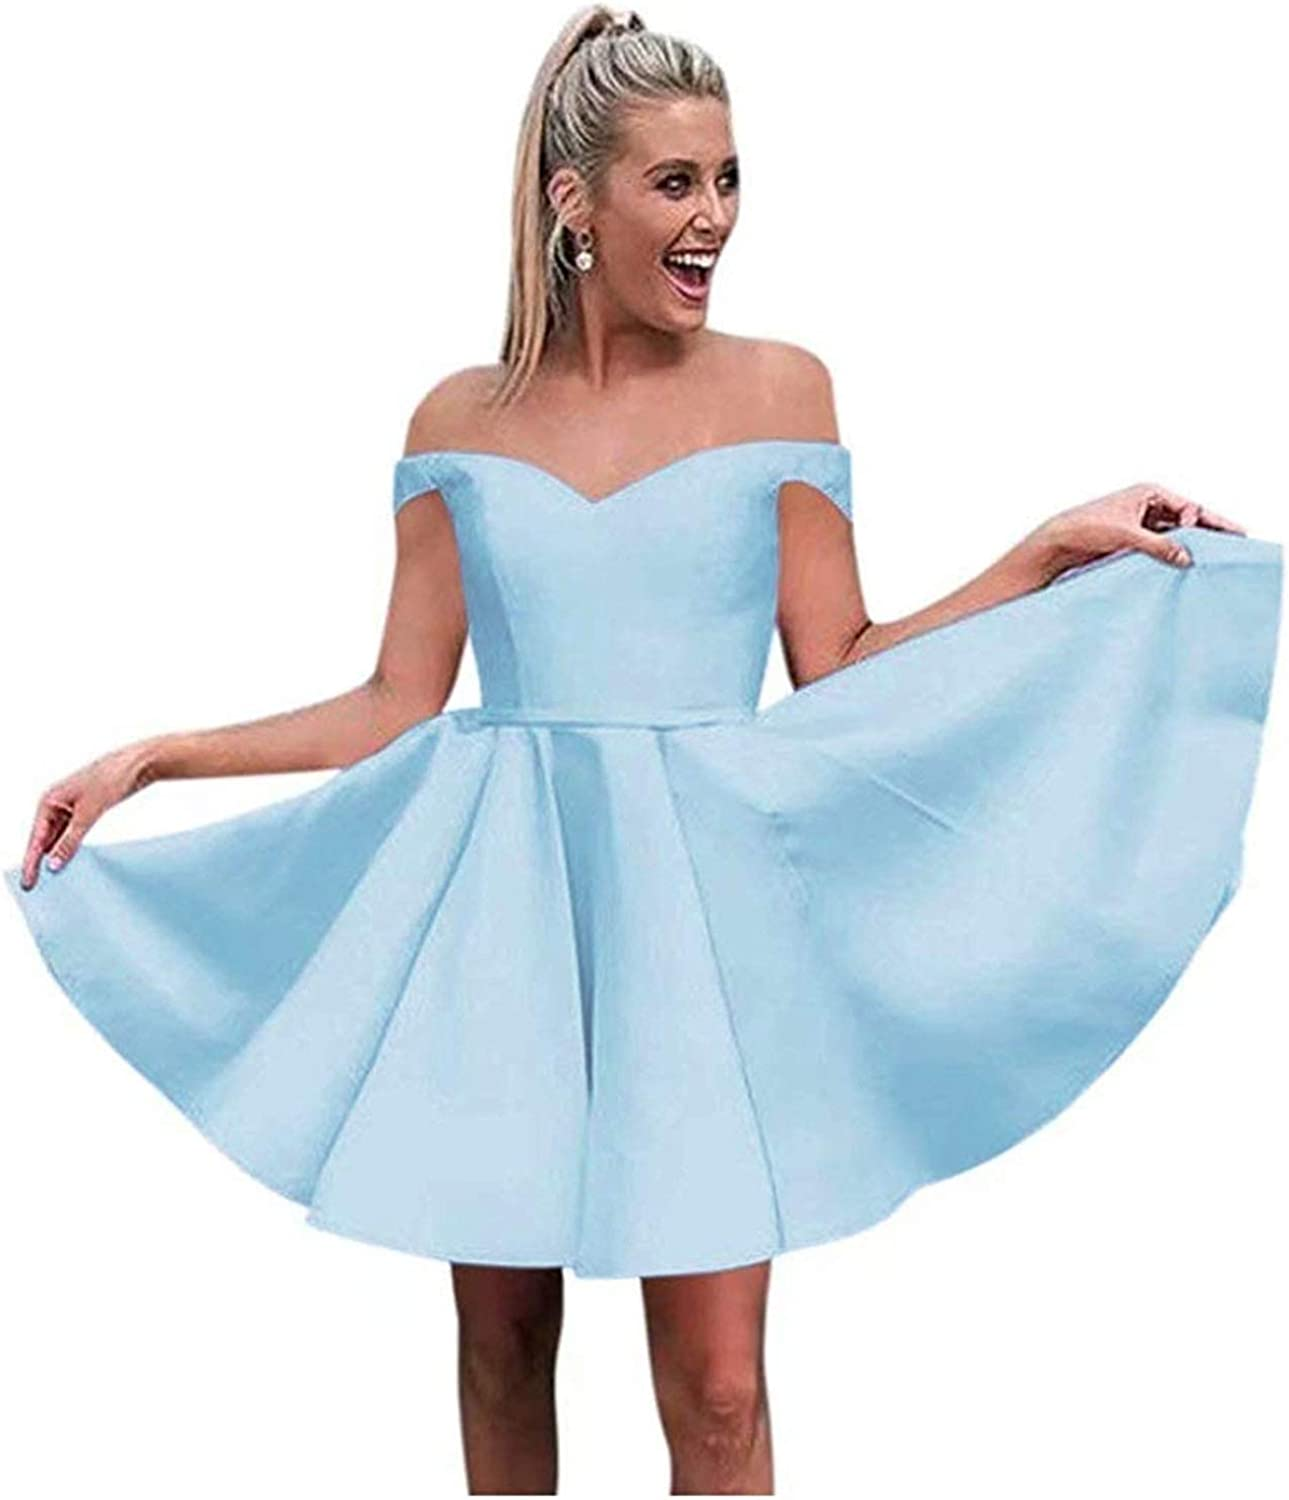 Gricharim Off Shoulder Homecoming Dresses 2019 Short Satin A-Line Prom Party Gowns